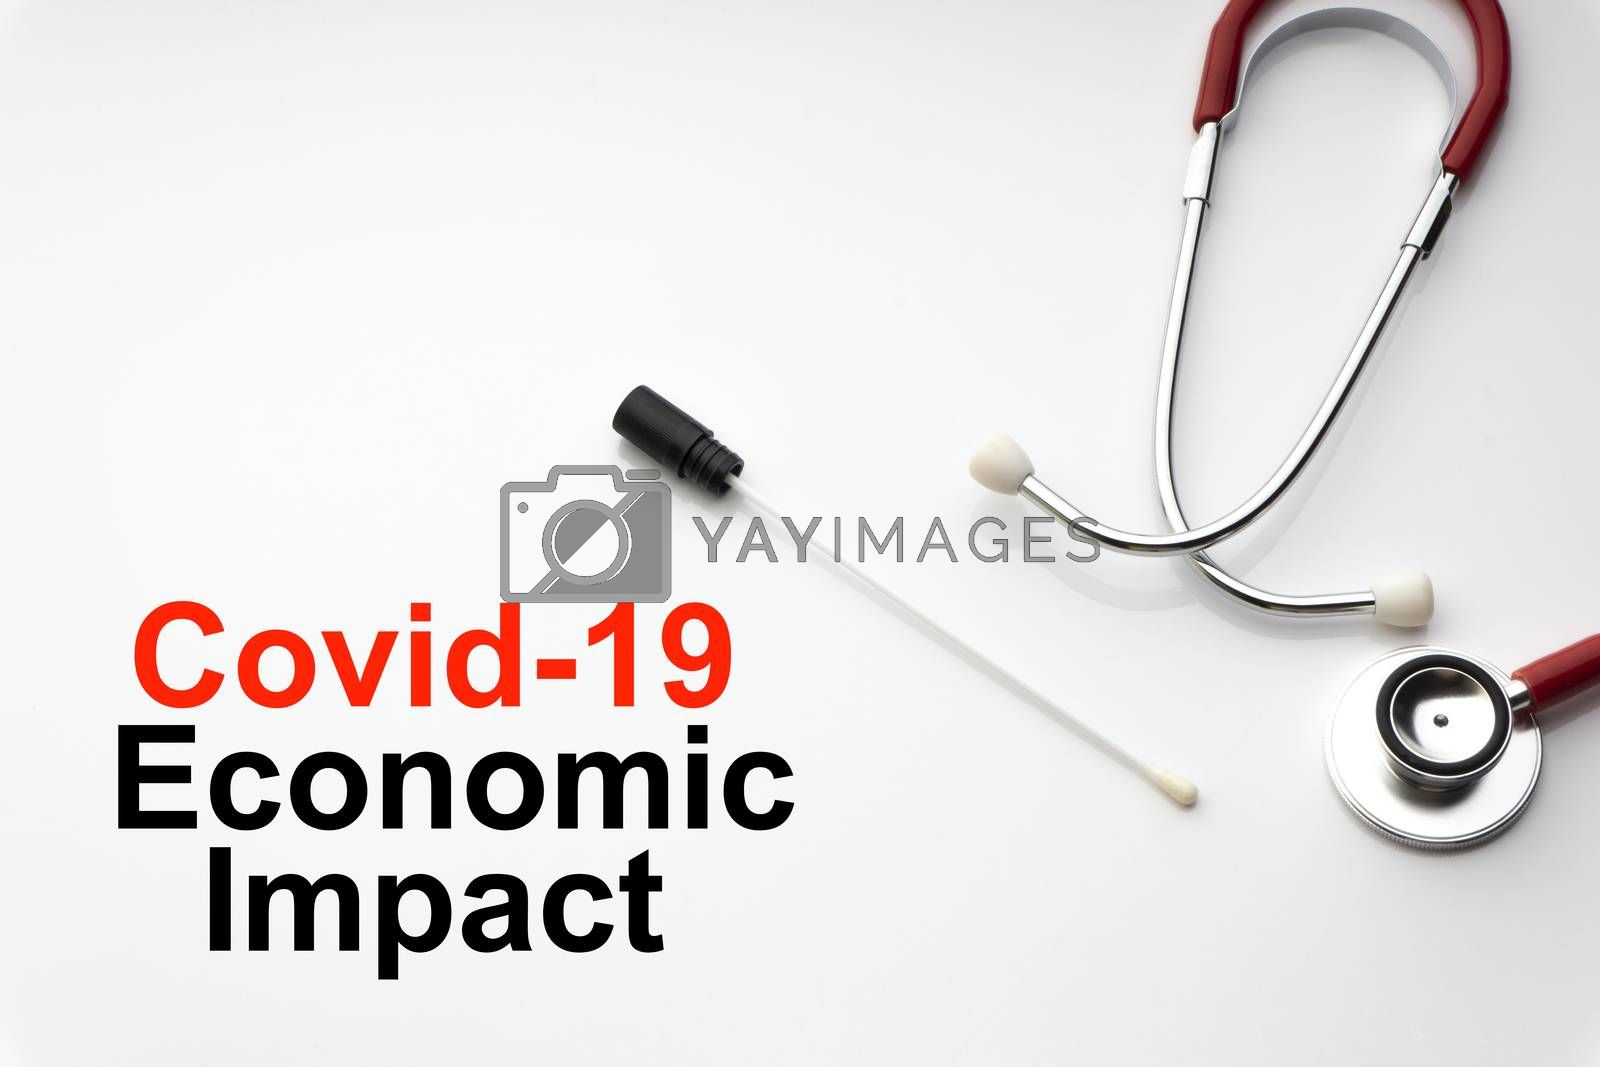 COVID-19 ECONOMIC IMPACT text with stethoscope and medical swab on white background. Covid or Coronavirus Concept